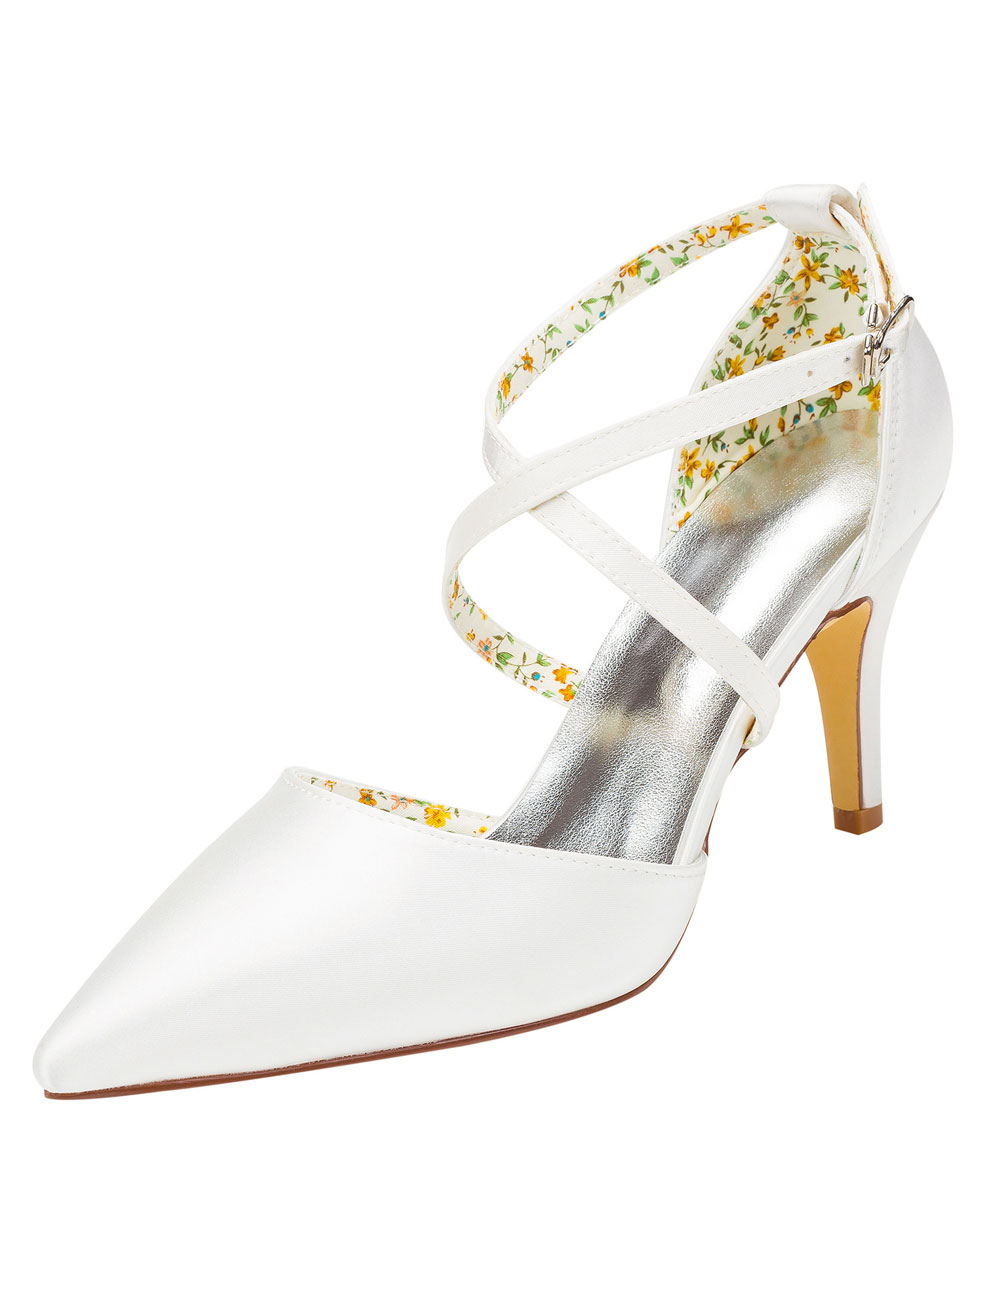 Buy Pointed Toe Bridal Shoes High Heel Criss-Cross White Pumps Women's Stiletto Solid Color Evening Shoes for $49.39 in Milanoo store